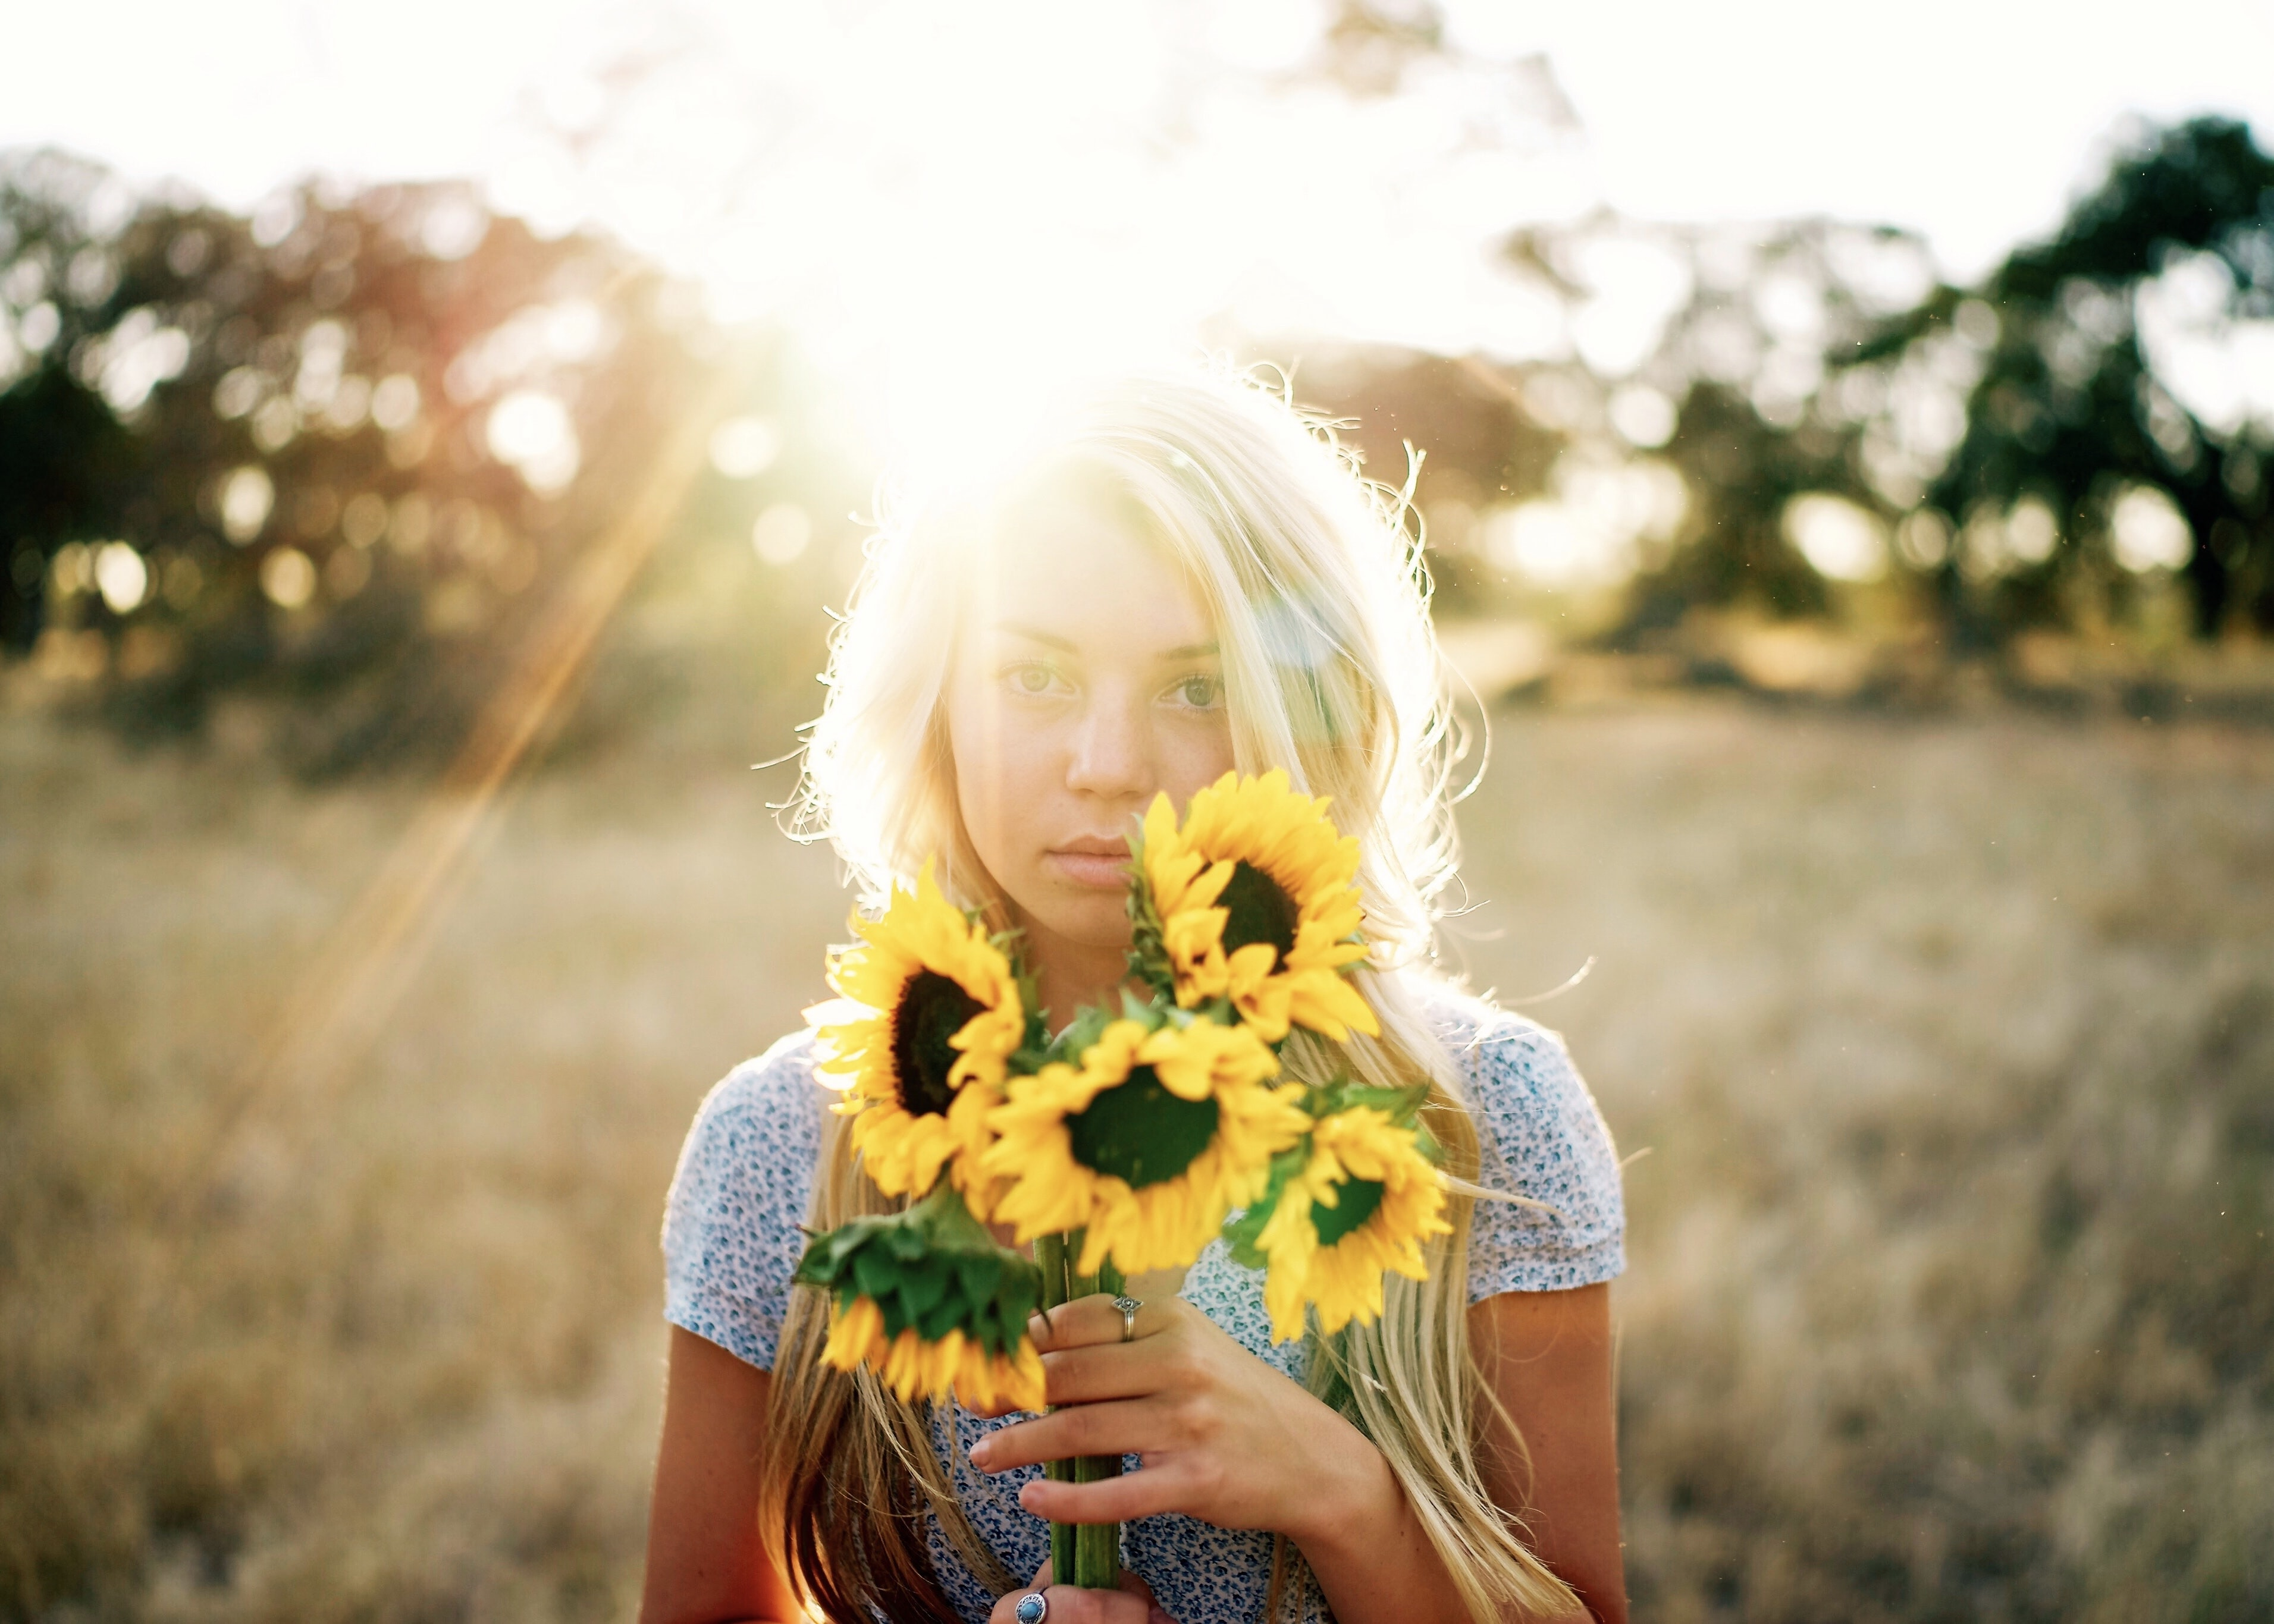 A blonde woman holding a bunch of young sunflowers